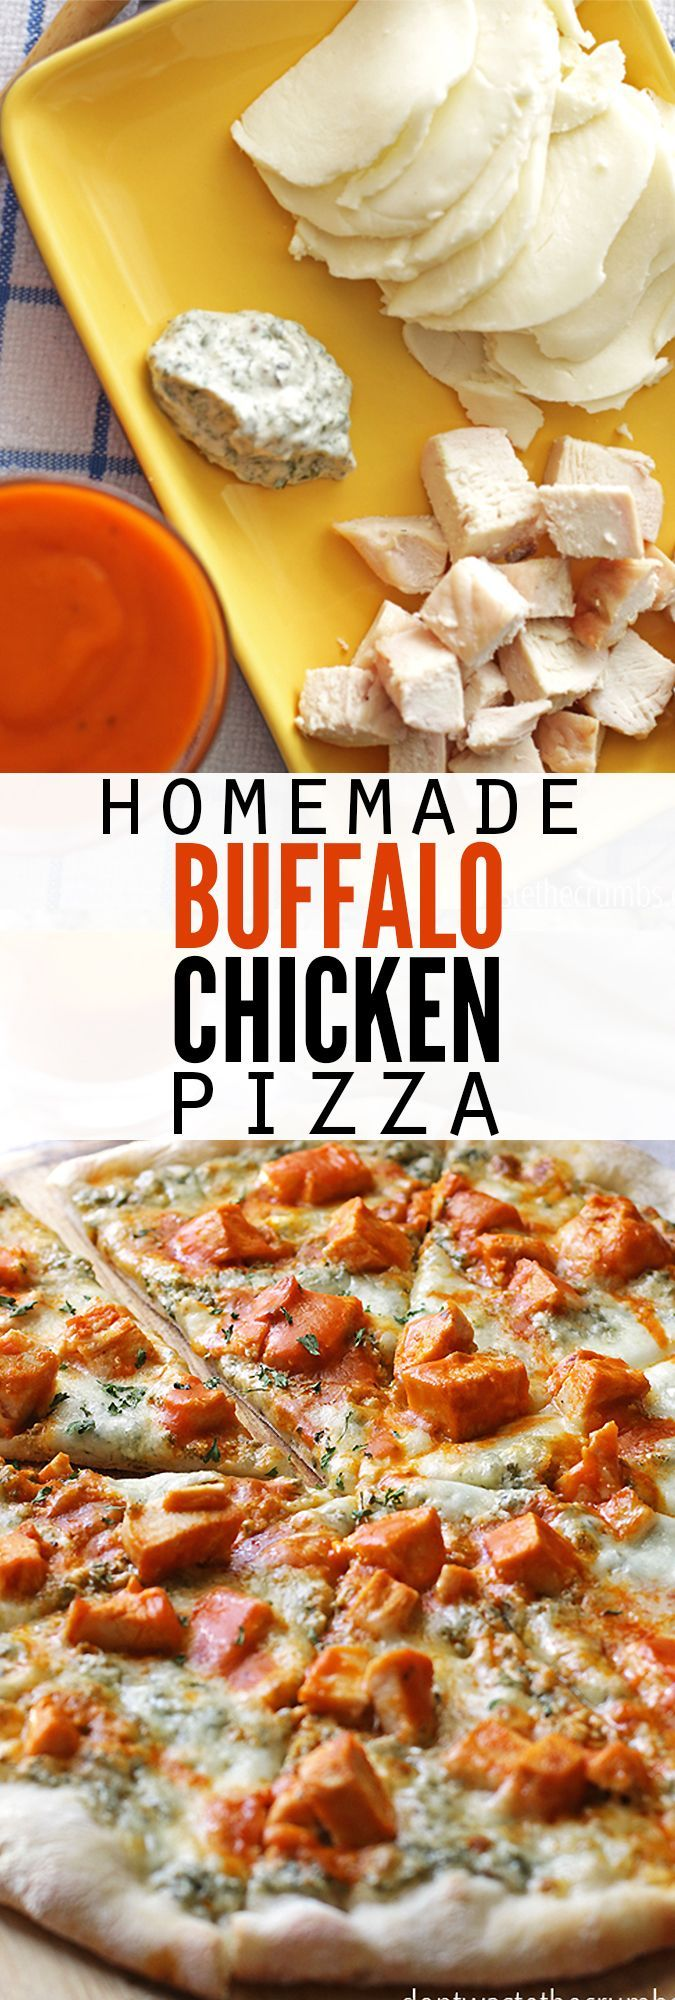 My husband used to only eat pepperoni pizza until he tried this - now he won't eat anything else! This easy recipe for buffalo chicken pizza combines homemade ranch dressing with pizza dough from scratch to make the best homemade pizza ever - hands down!